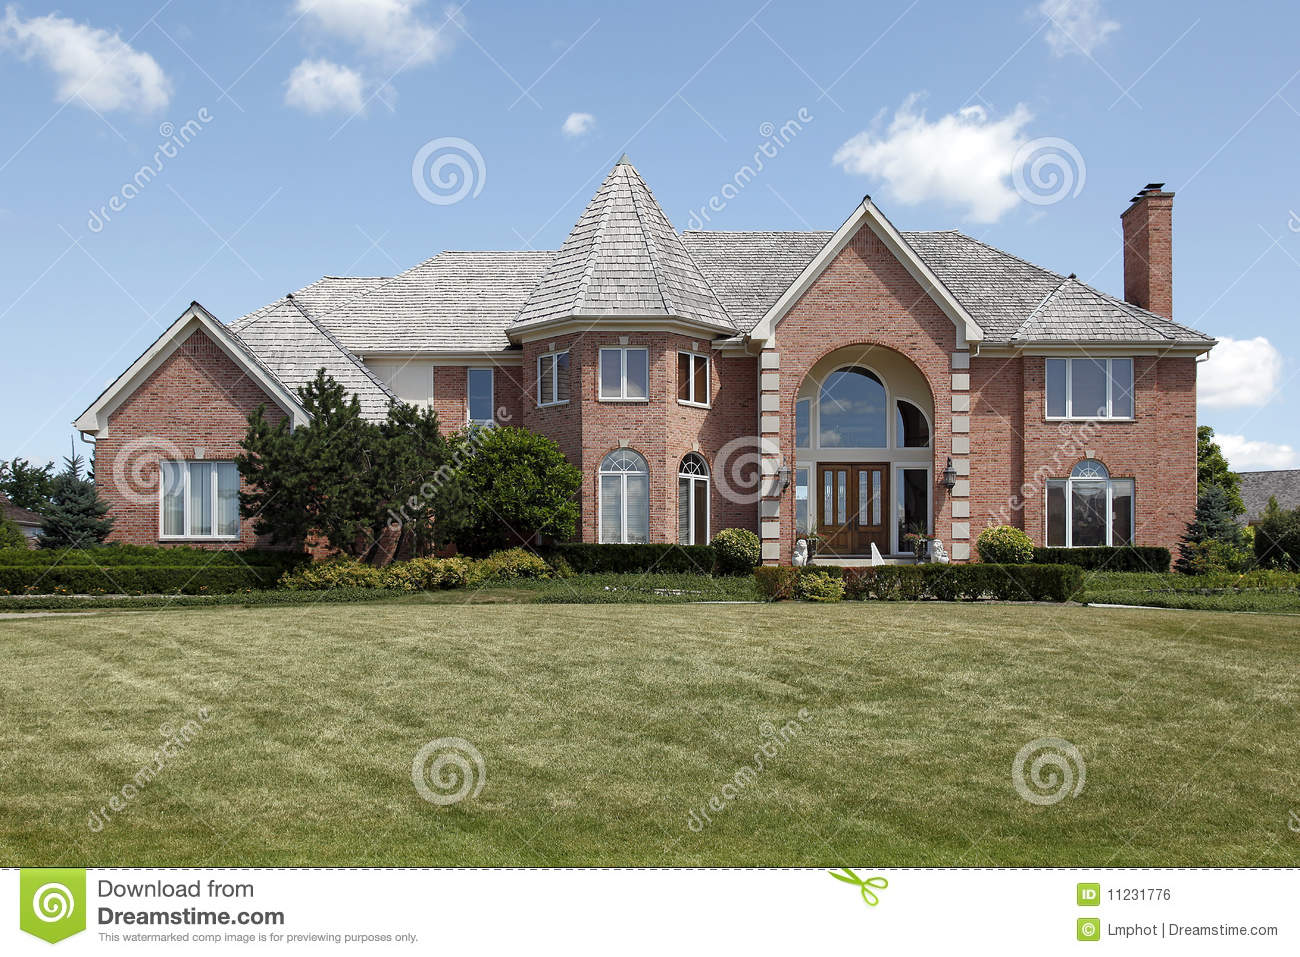 Large Brick Home With Turret Stock Photo - Image of